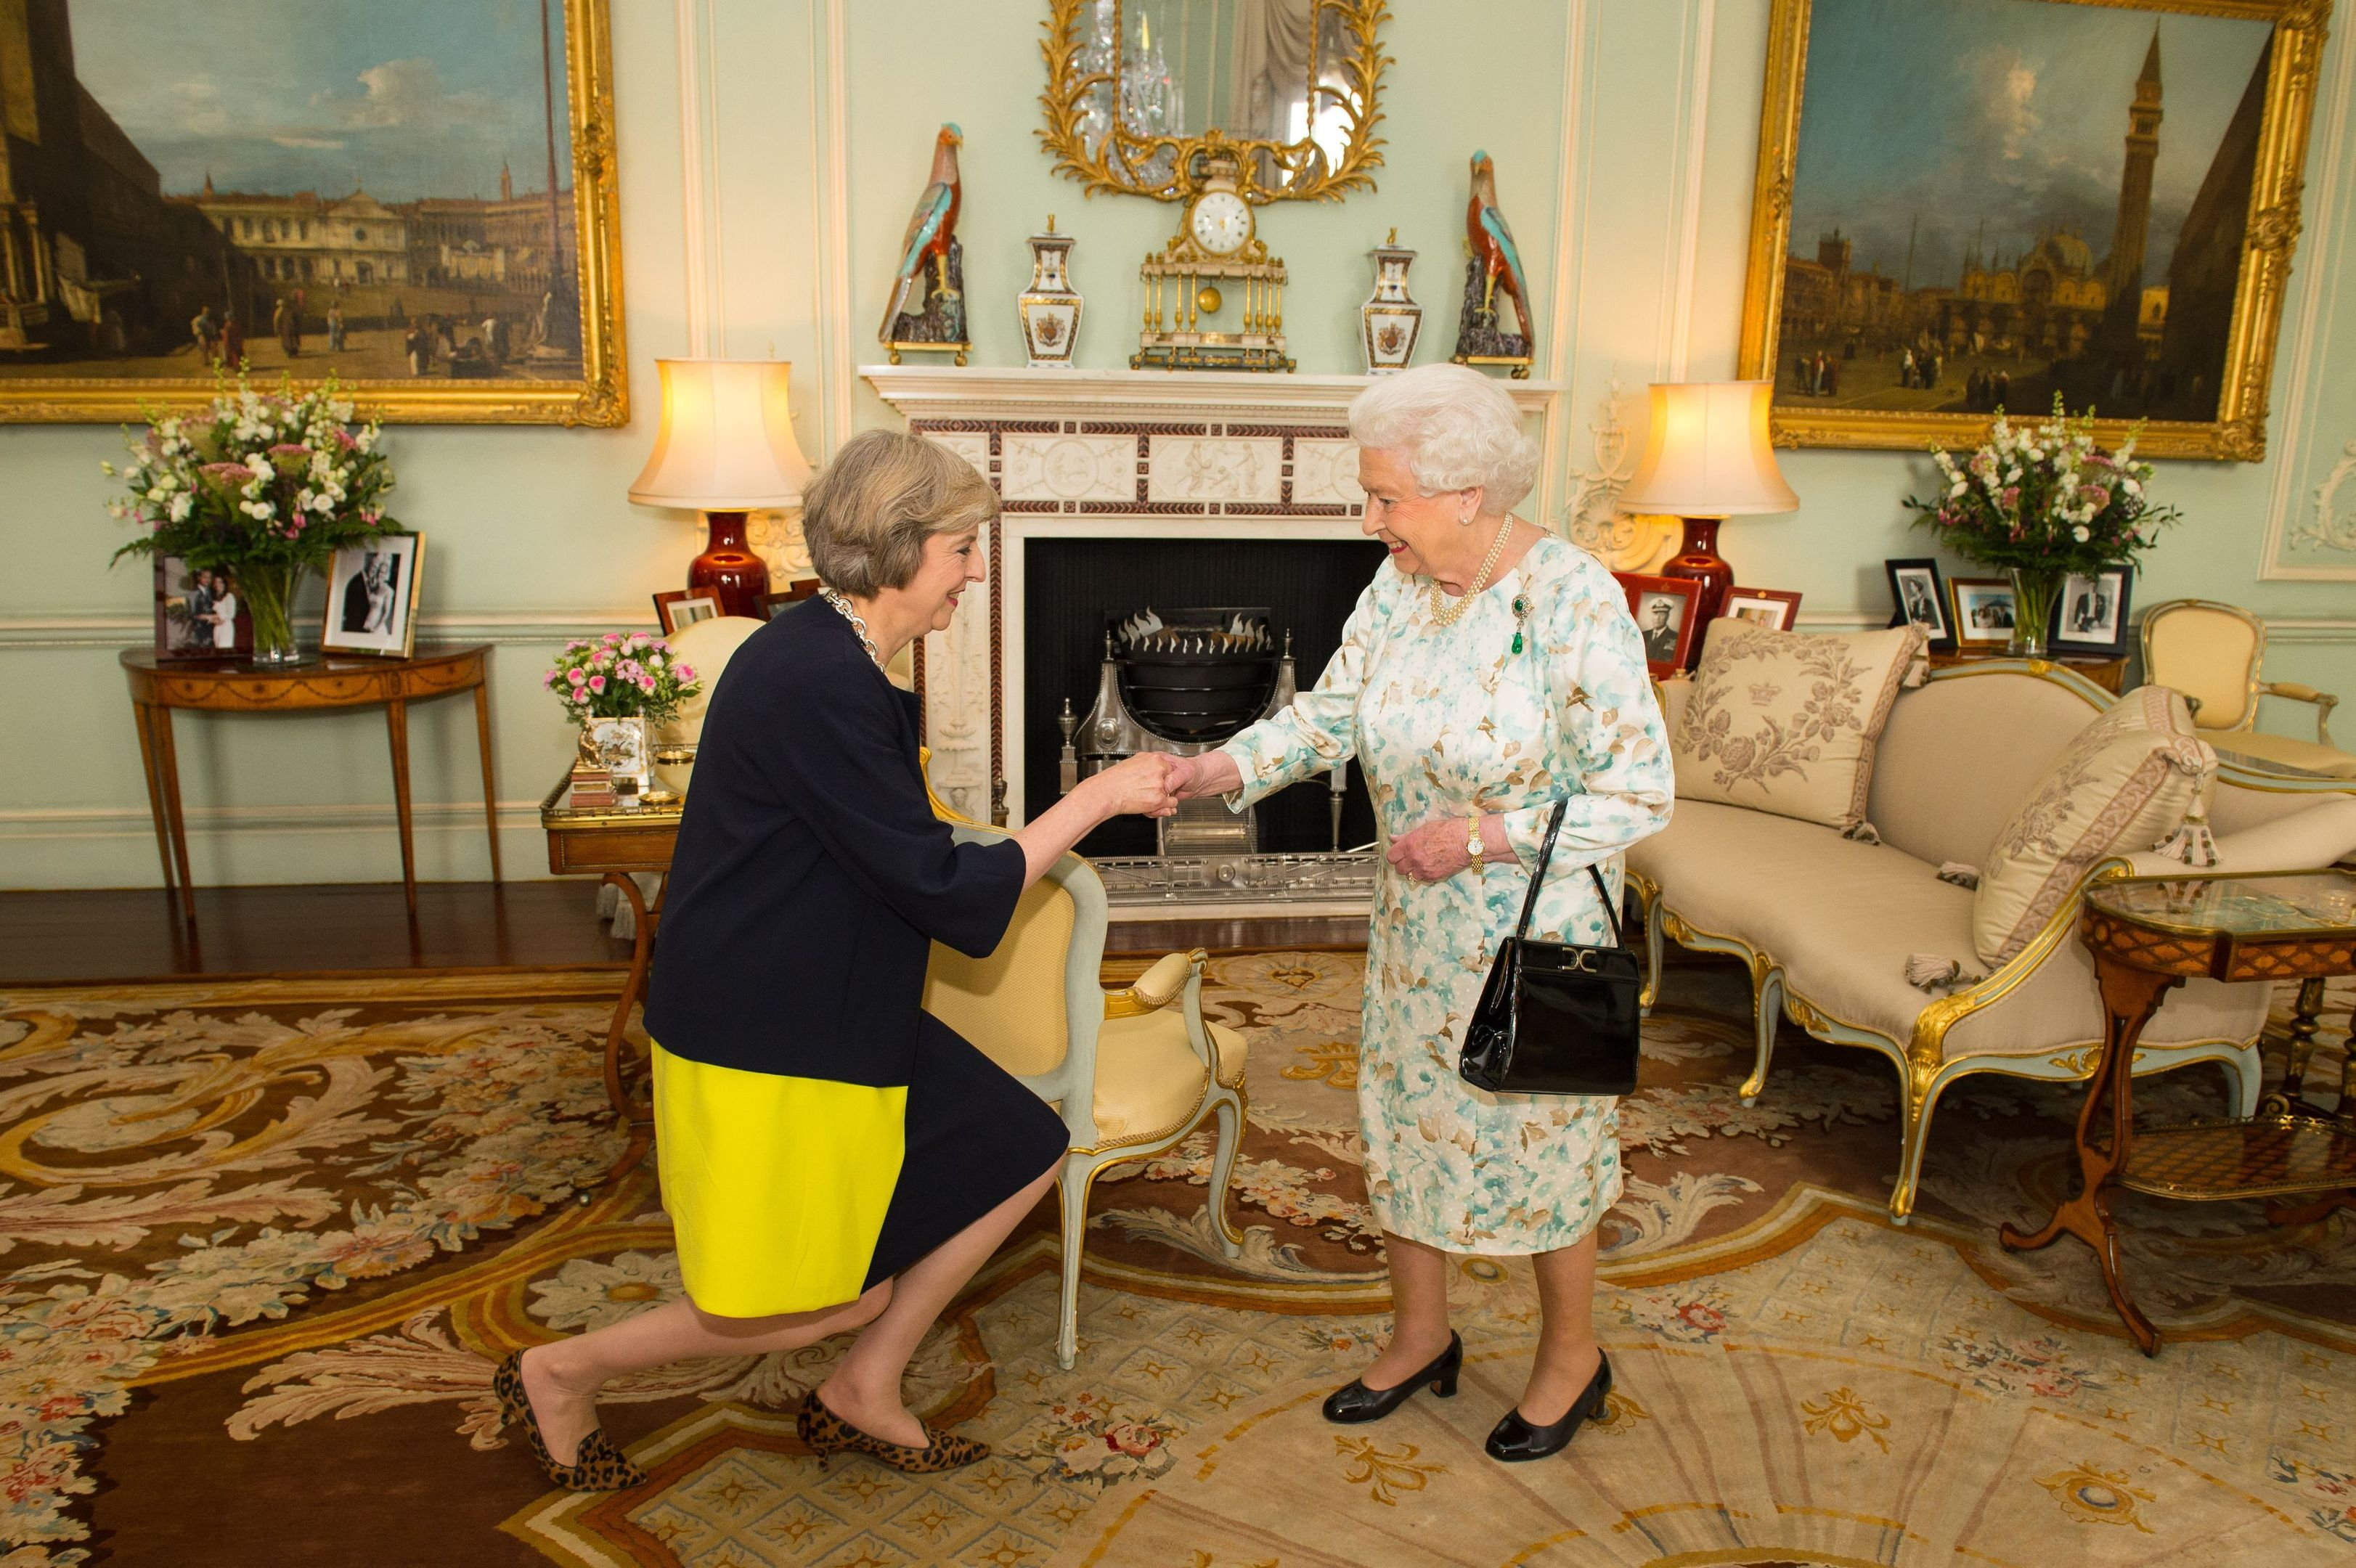 Queen Elizabeth II welcomes Theresa May at the start of an audience in Buckingham Palace (Dominic Lipinski / PA Archive)